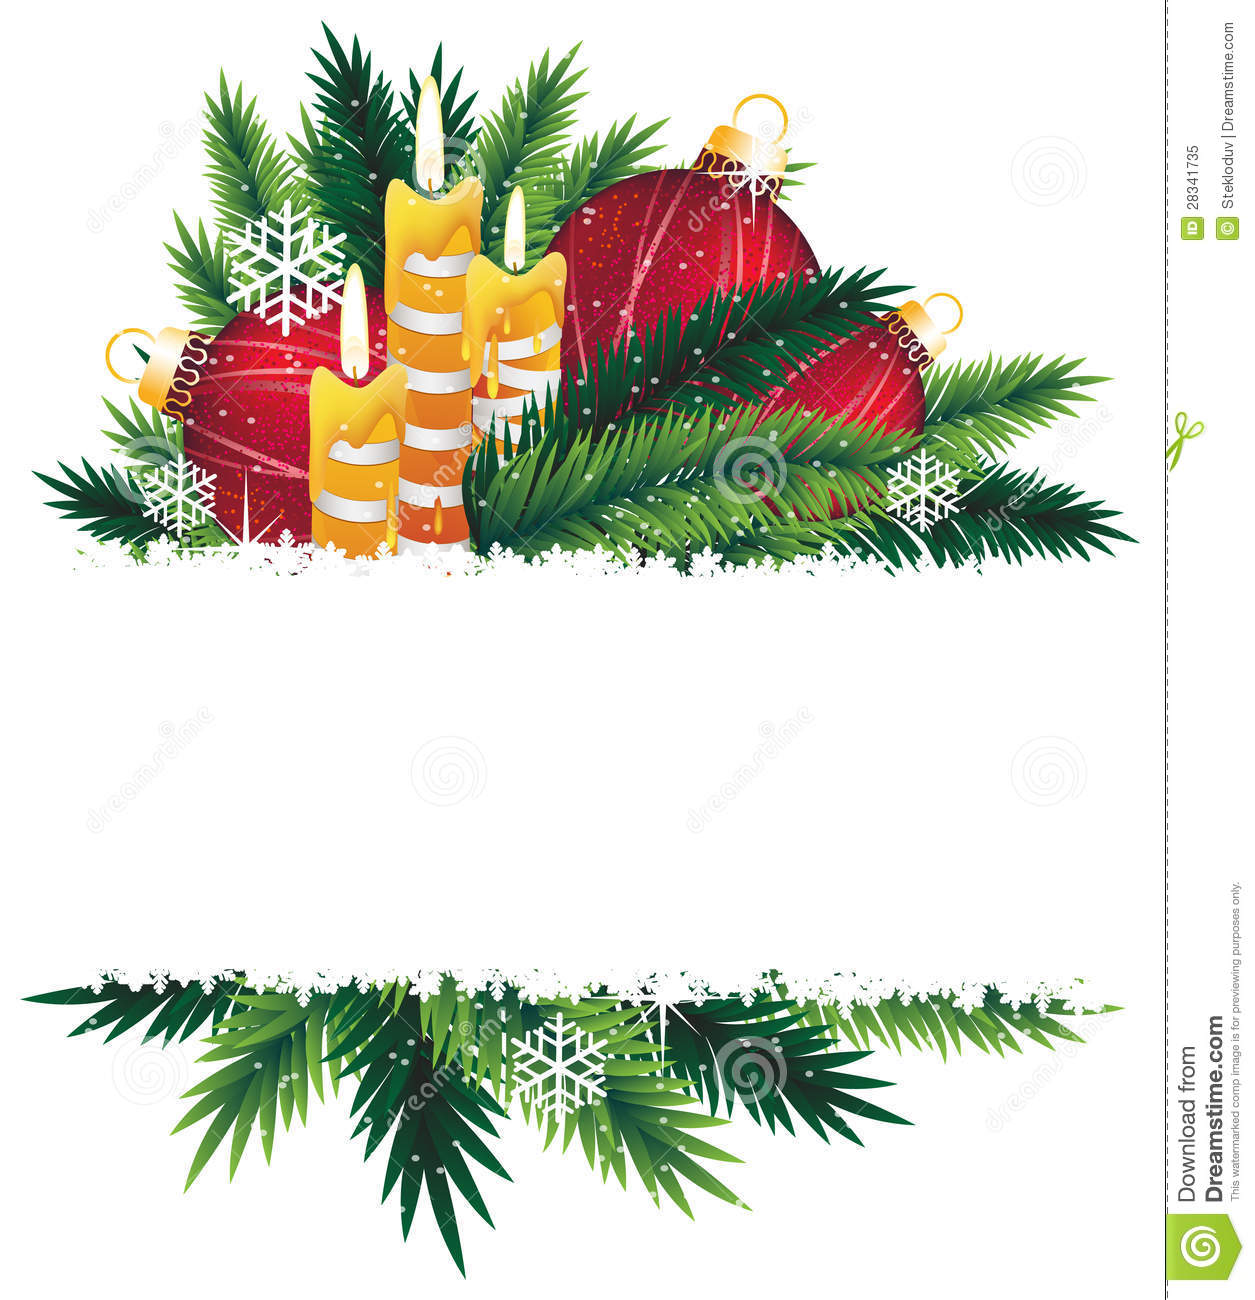 Christmas Decorations And Pine Tree Branches. Royalty Free Stock Photo - Image: 28341735